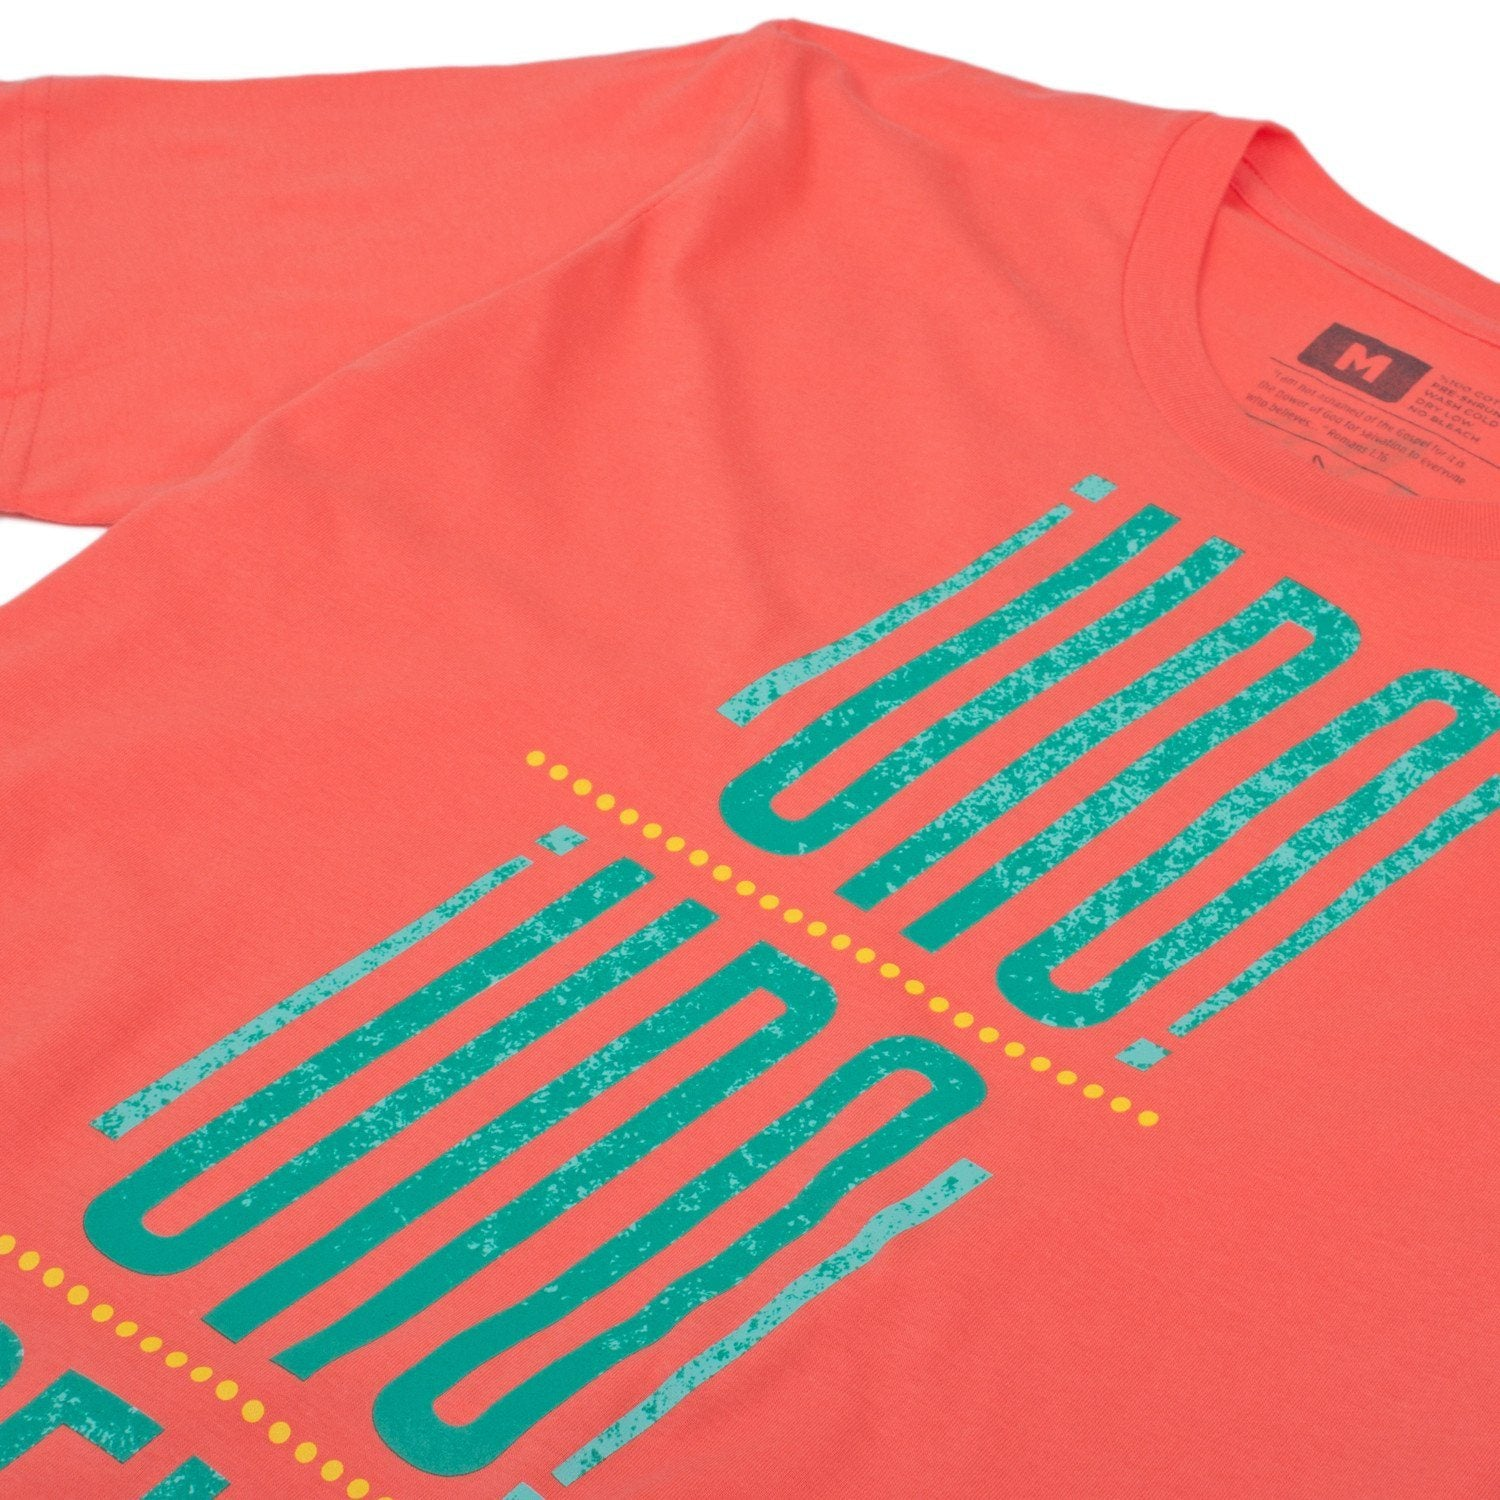 Andy Mineo 'Uno Uno Seis' T-Shirt - Close